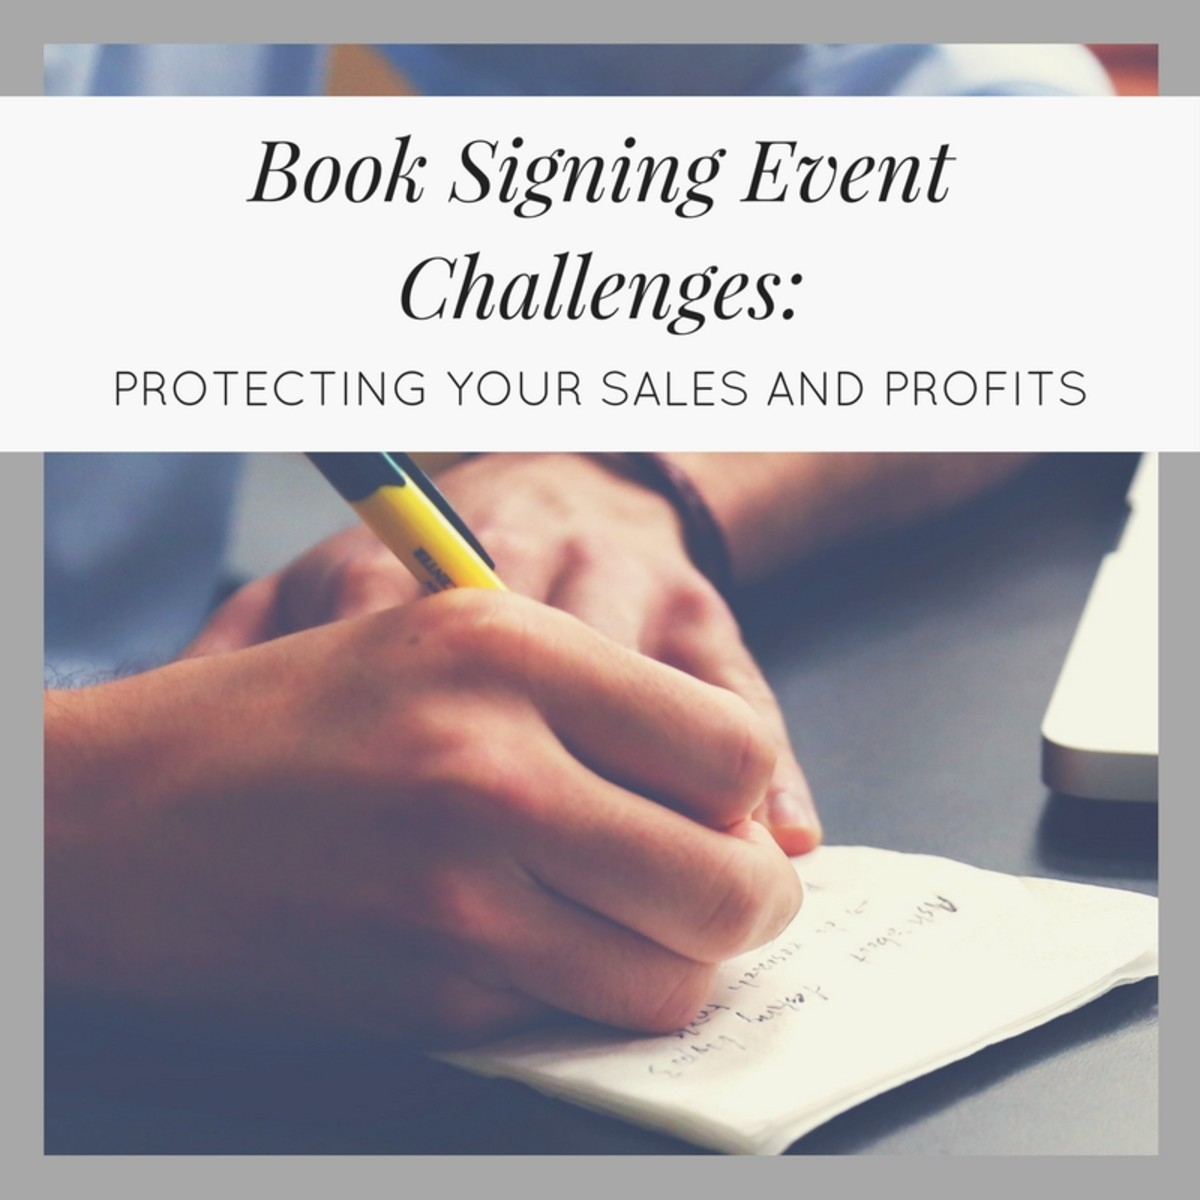 book-signing-event-challenges-protecting-your-sales-and-profits